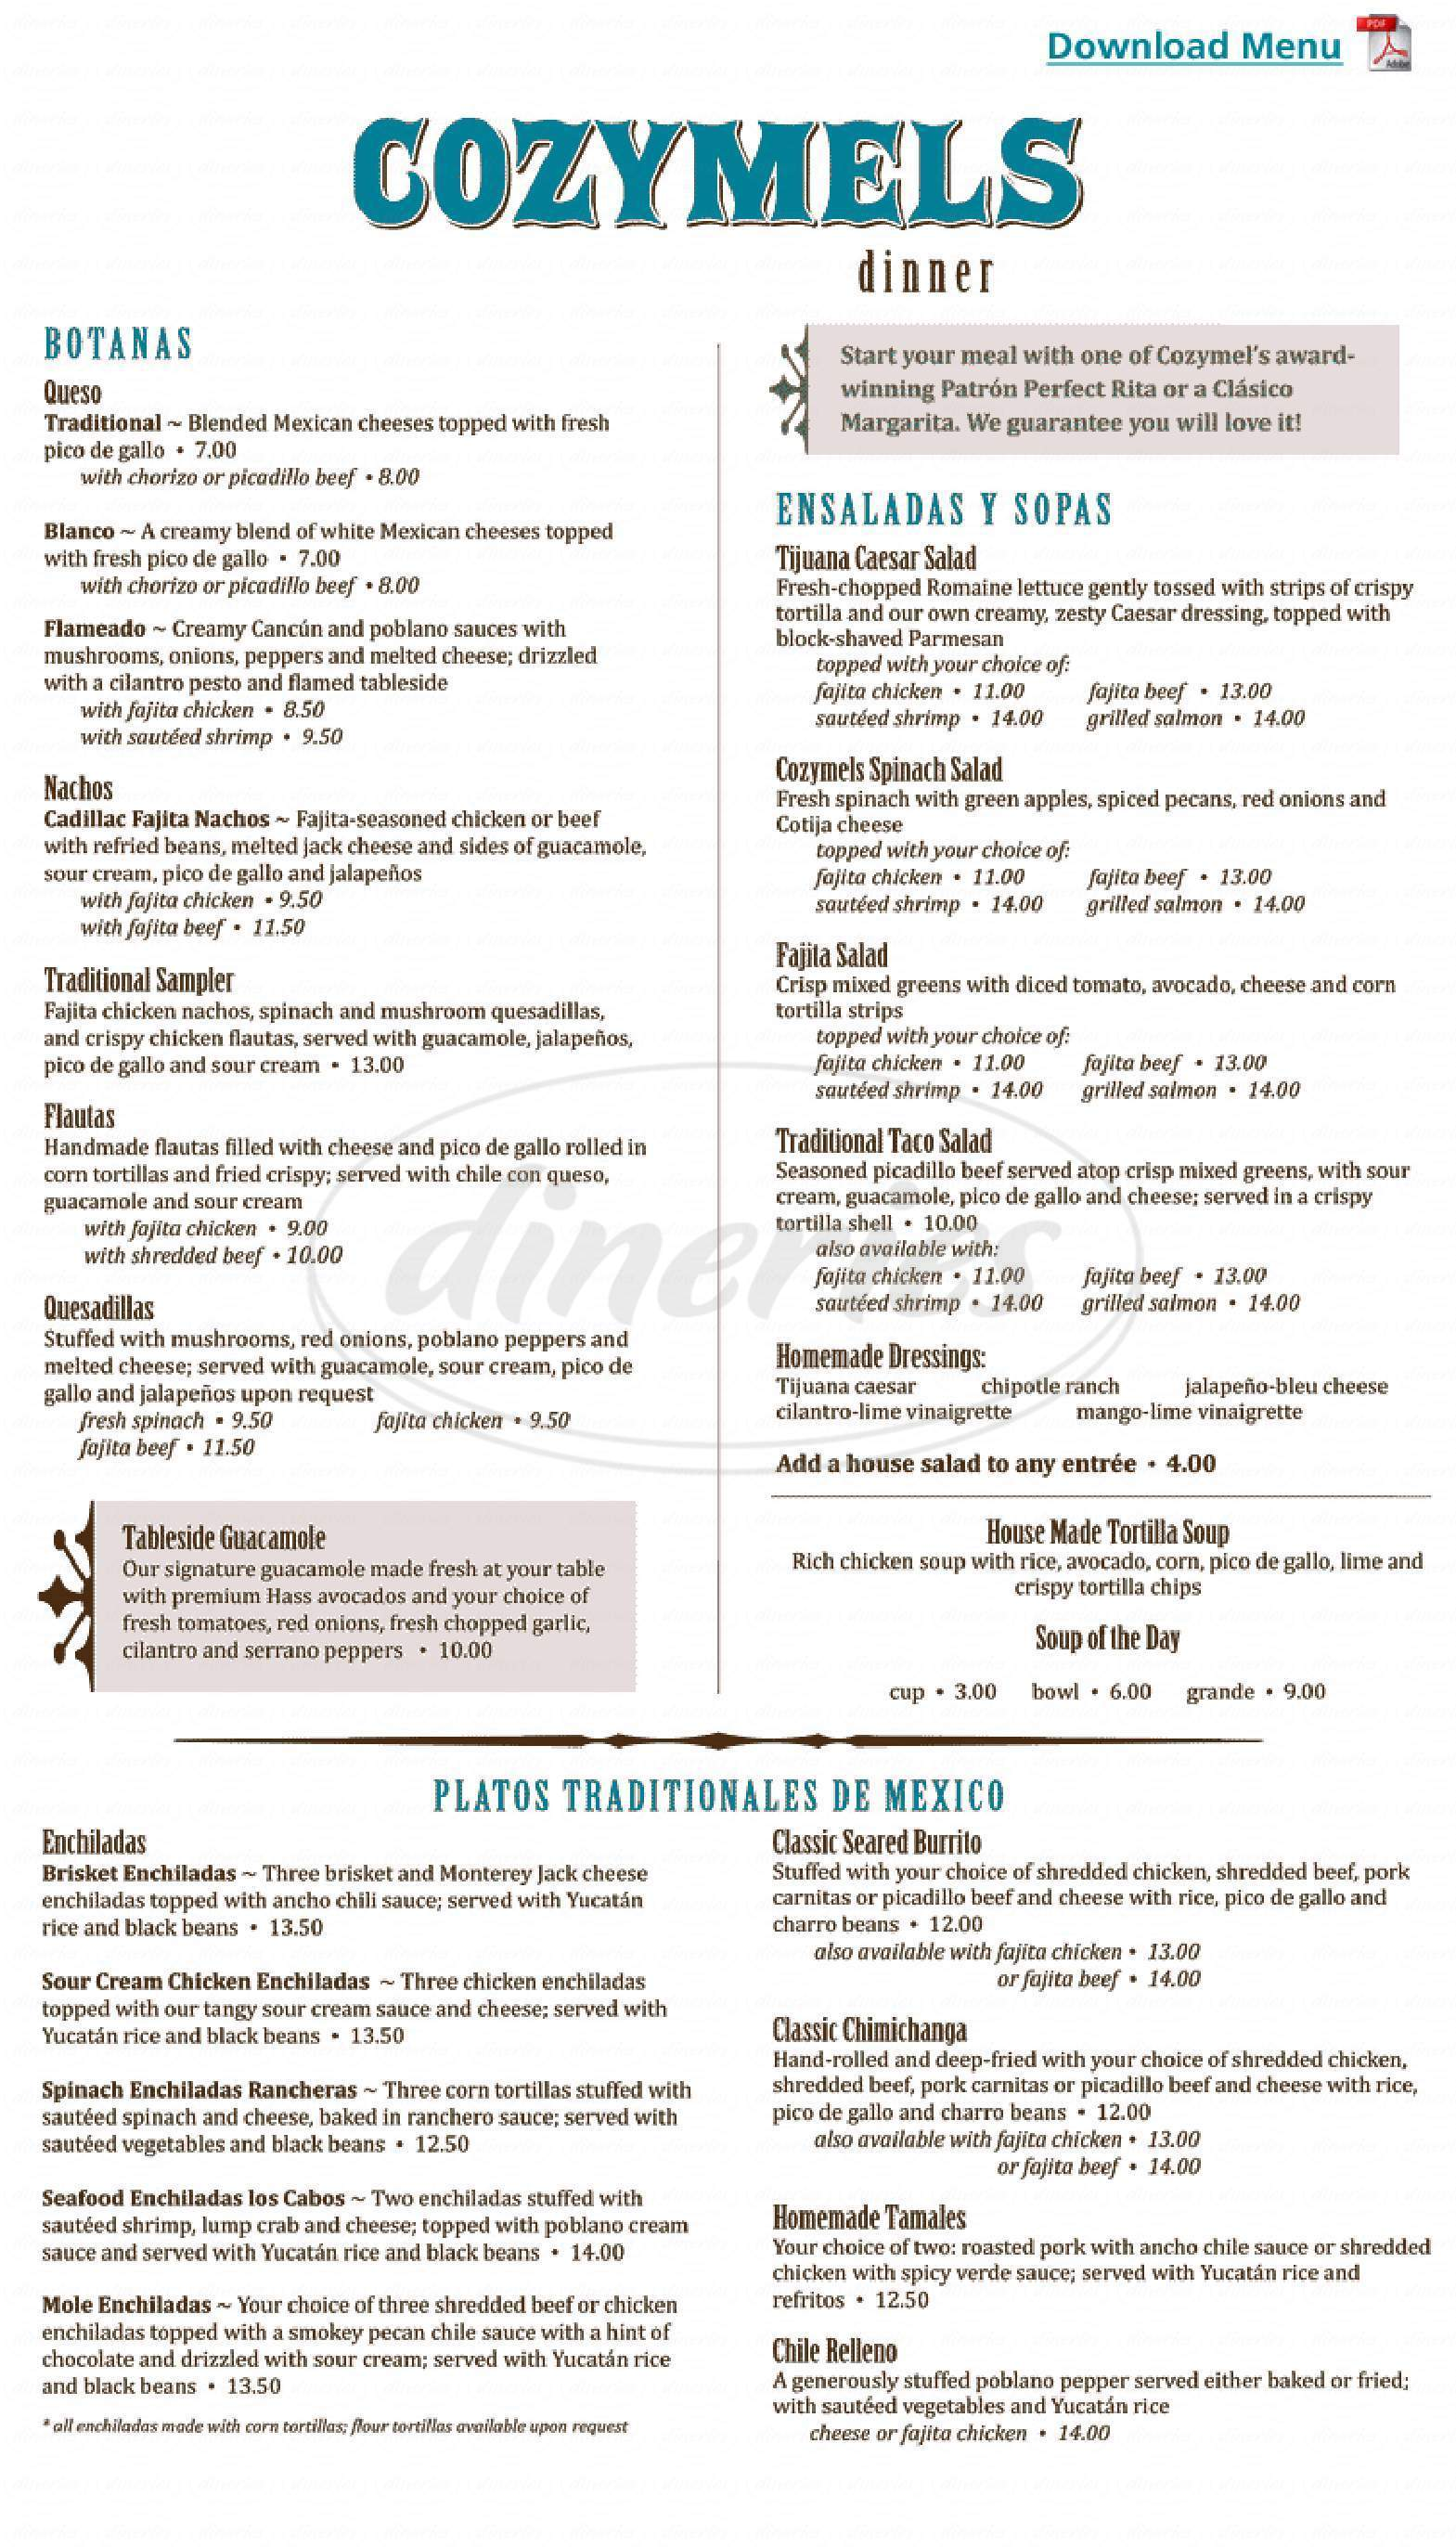 menu for Cozymel's Mexican Grill